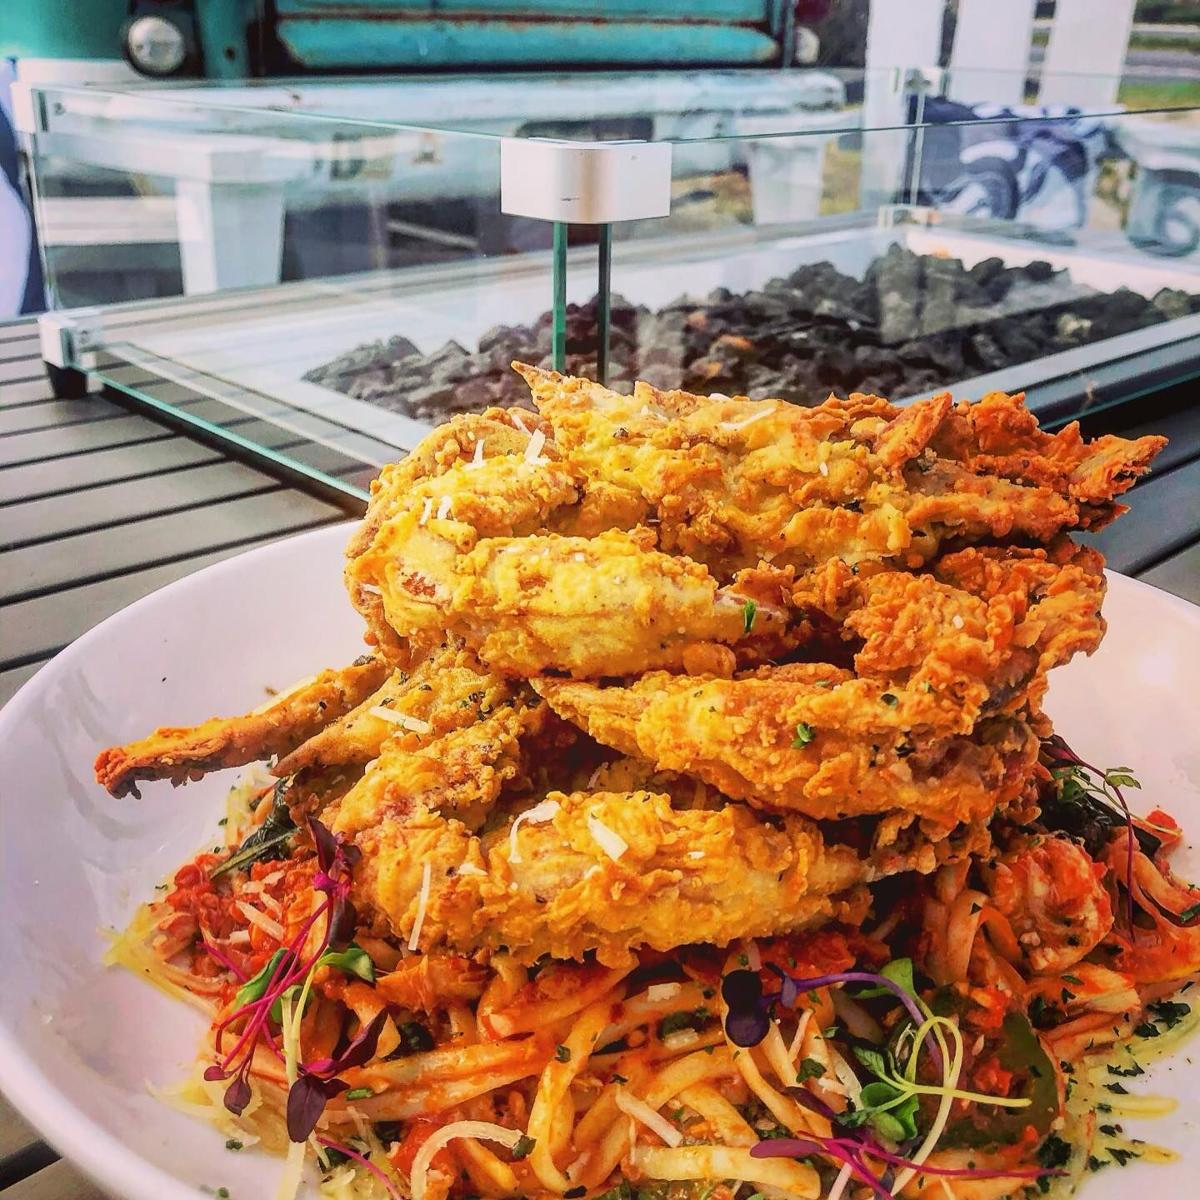 Soft-shell crabs at Matt's Fish Camp in Lewes